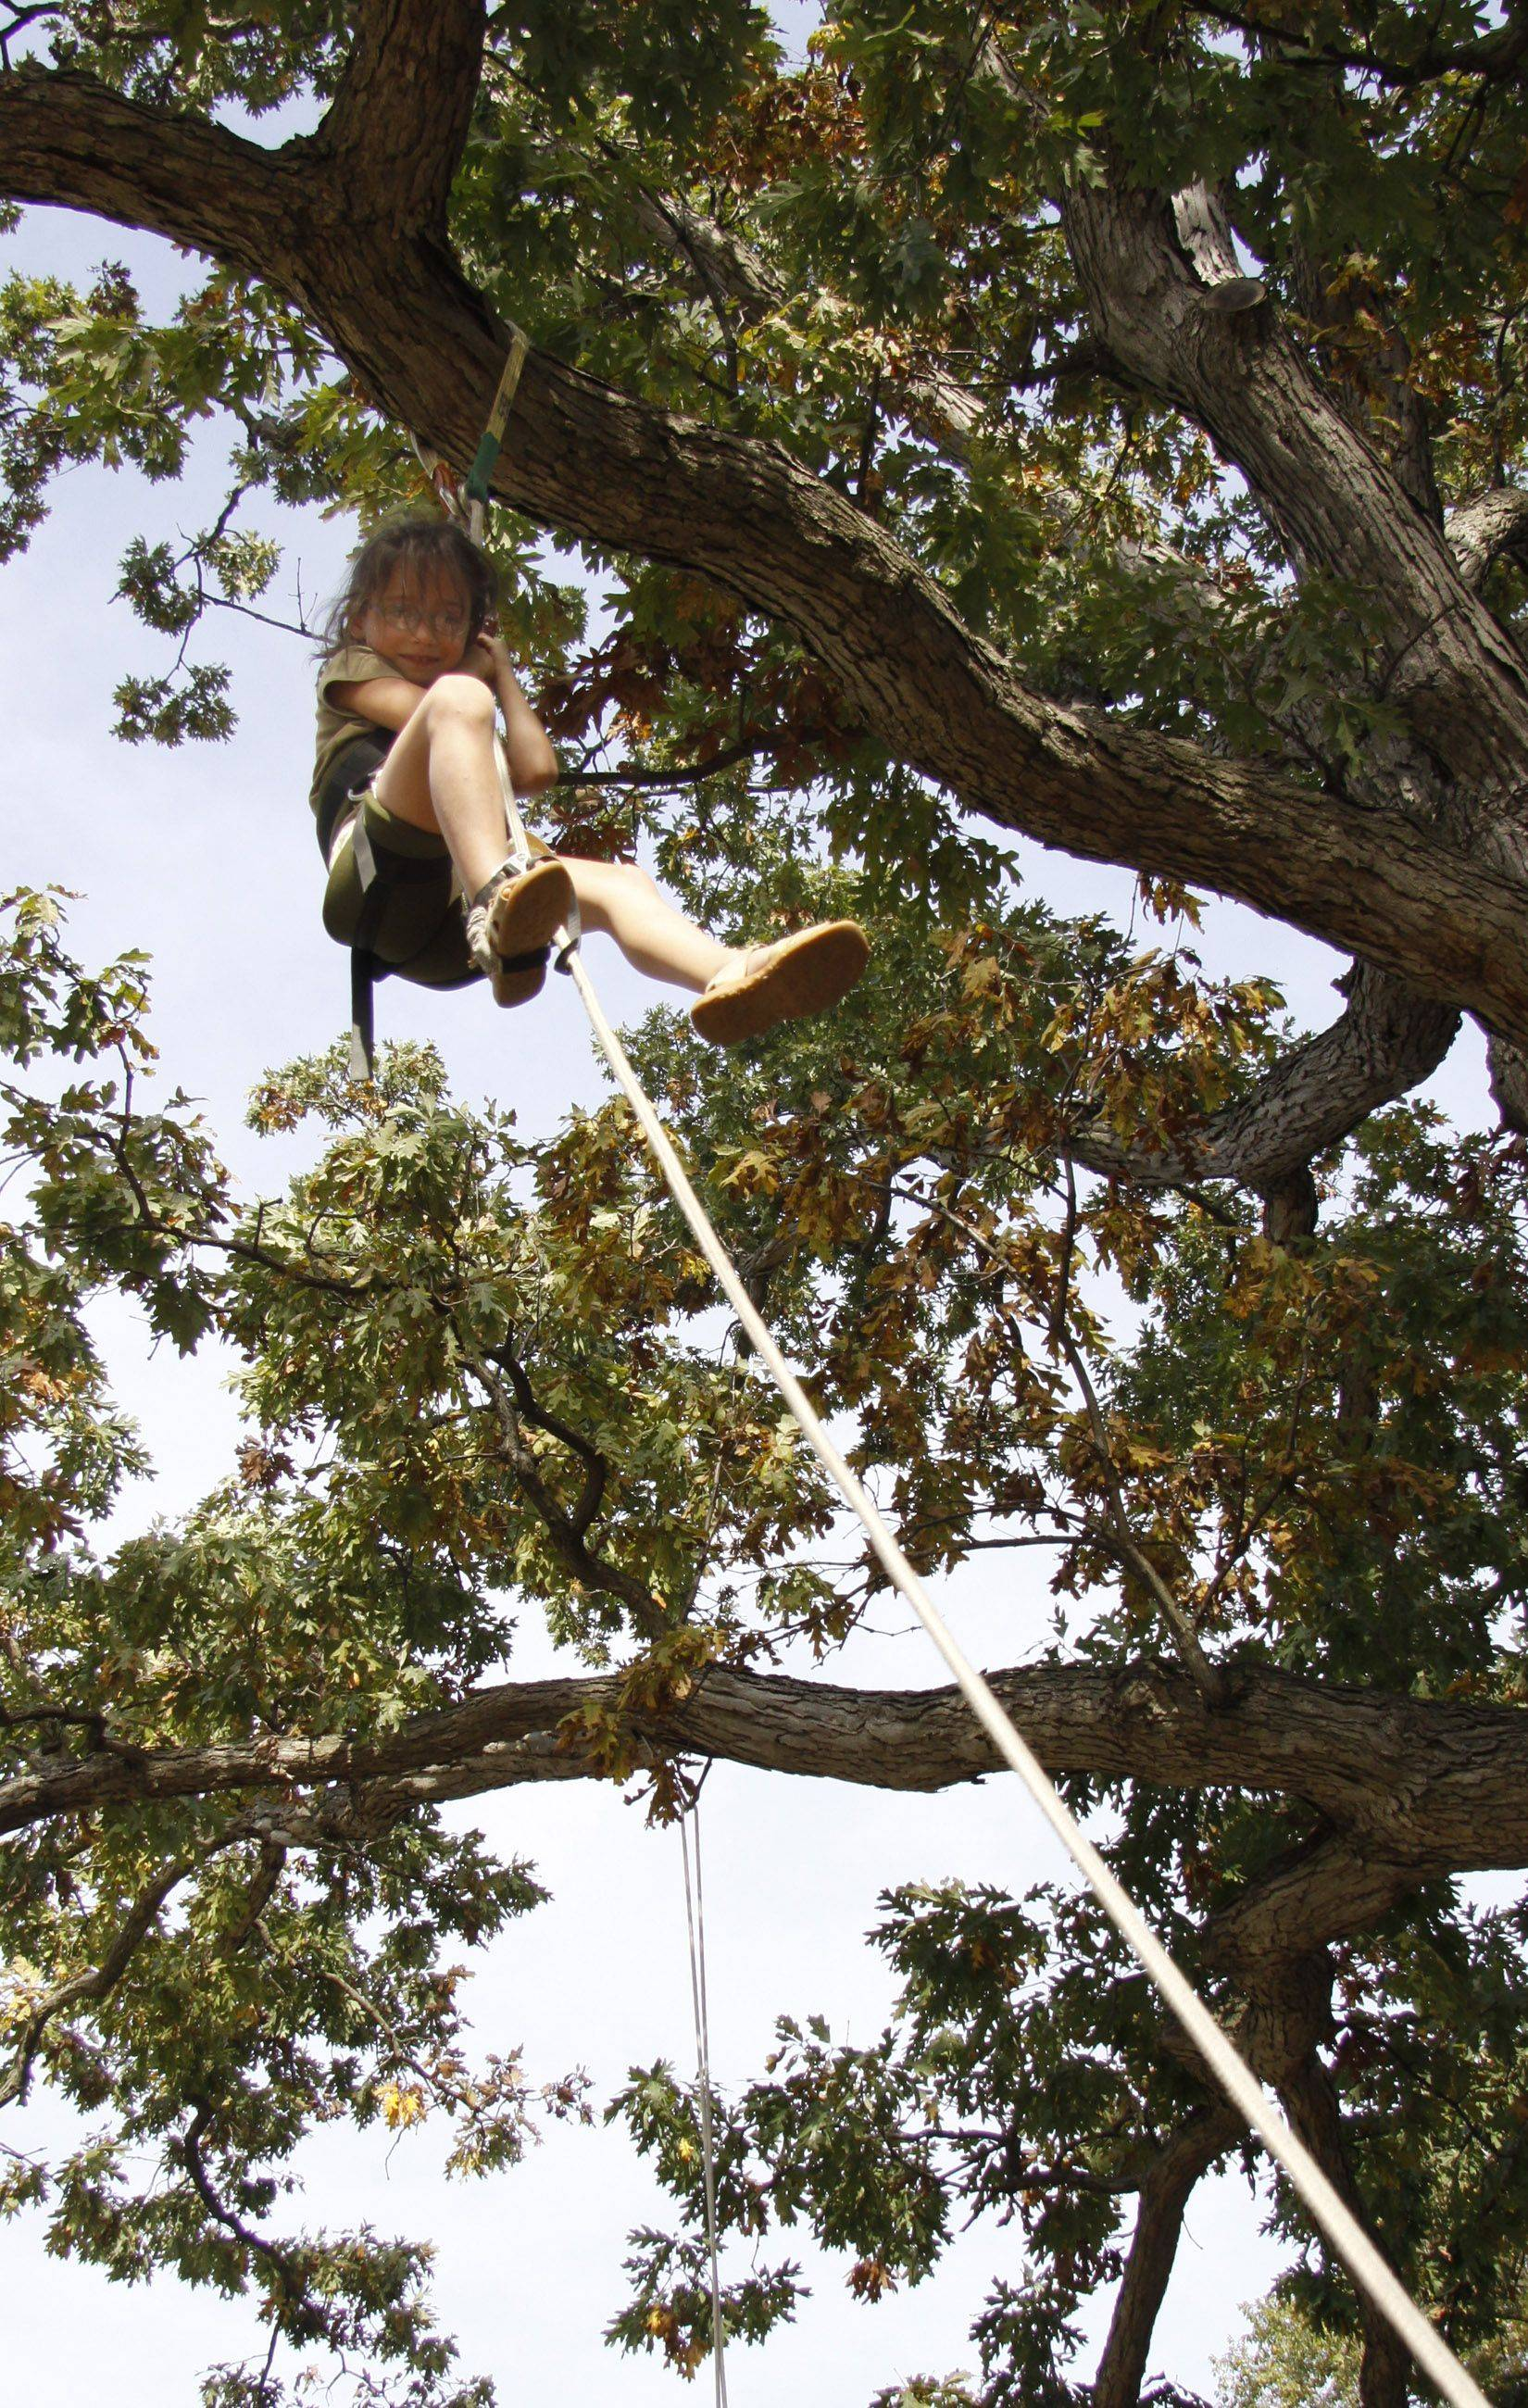 Jolina Mueller, 7, of Woodridge looks down after getting to the top of the tree with a rope and pulley system. Forest Preserve botanists were on hand showing the children how they get to the tops of trees by giving them a first-hand experience.